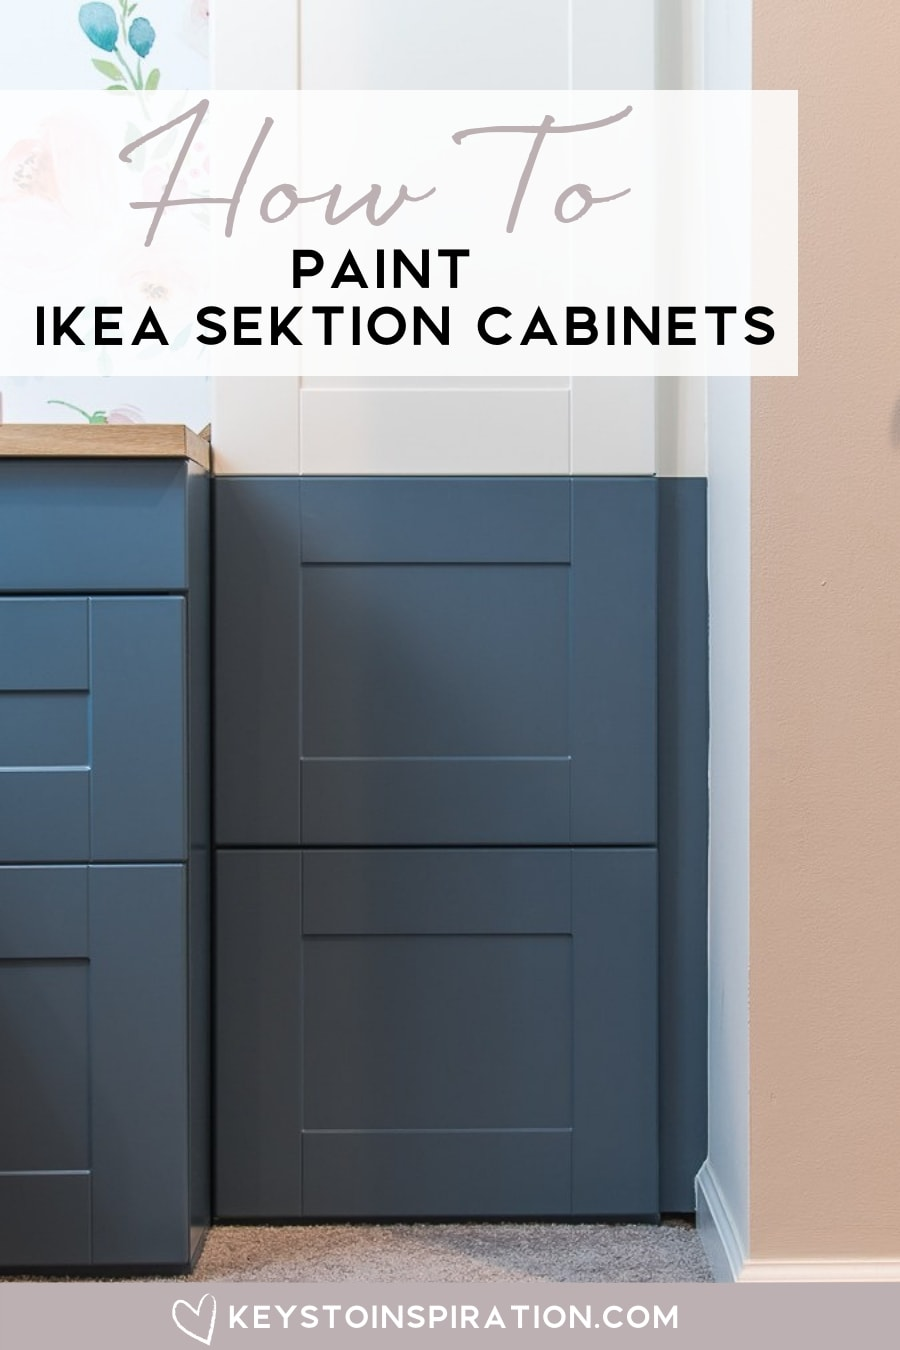 Ikea Faktum Assembly Instructions How To Paint Ikea Sektion Cabinets One Room Challenge Week